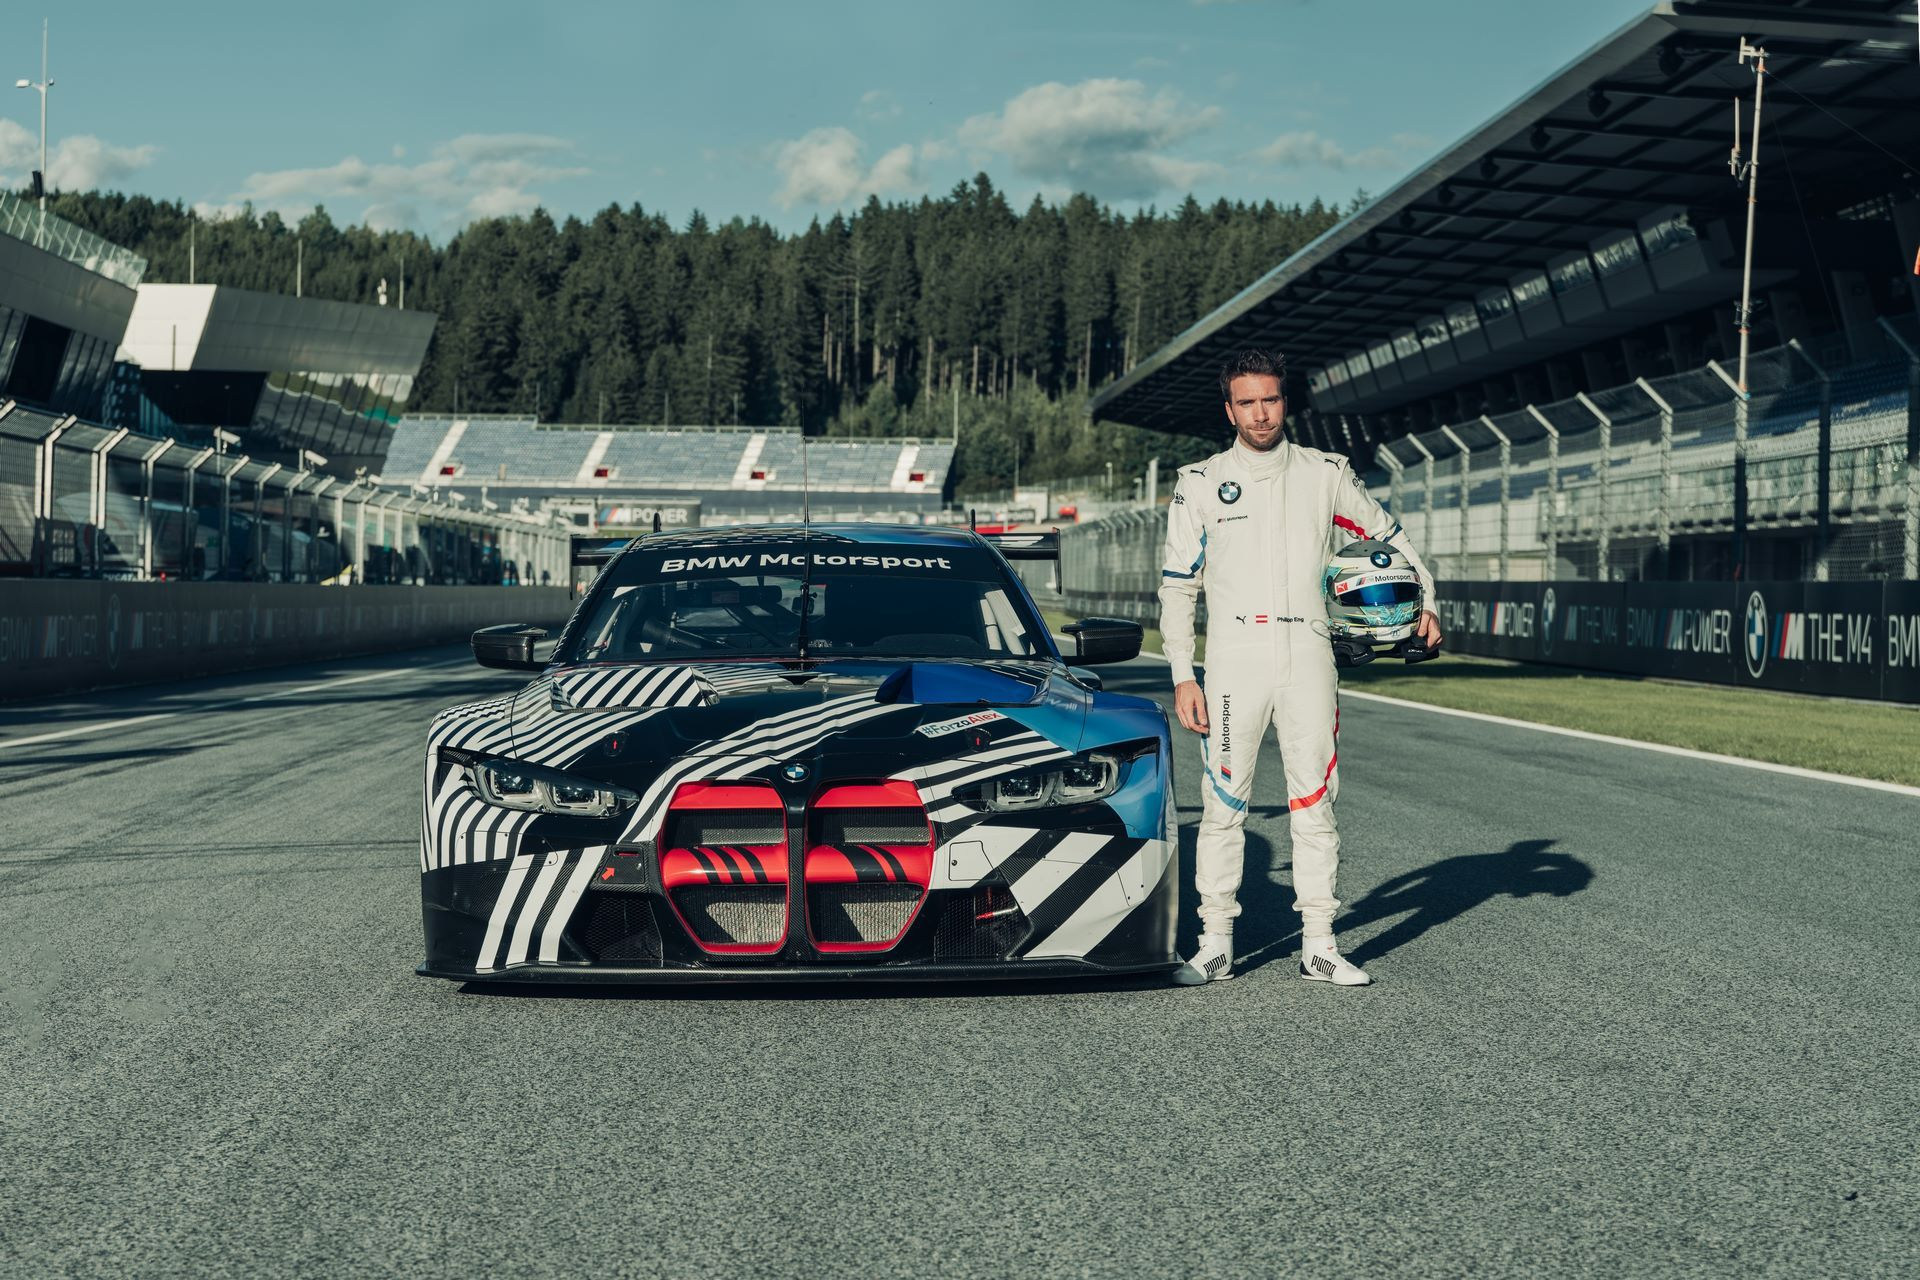 New-BMW-M4-Coupe-and-BMW-M4-GT3-prototypes-18